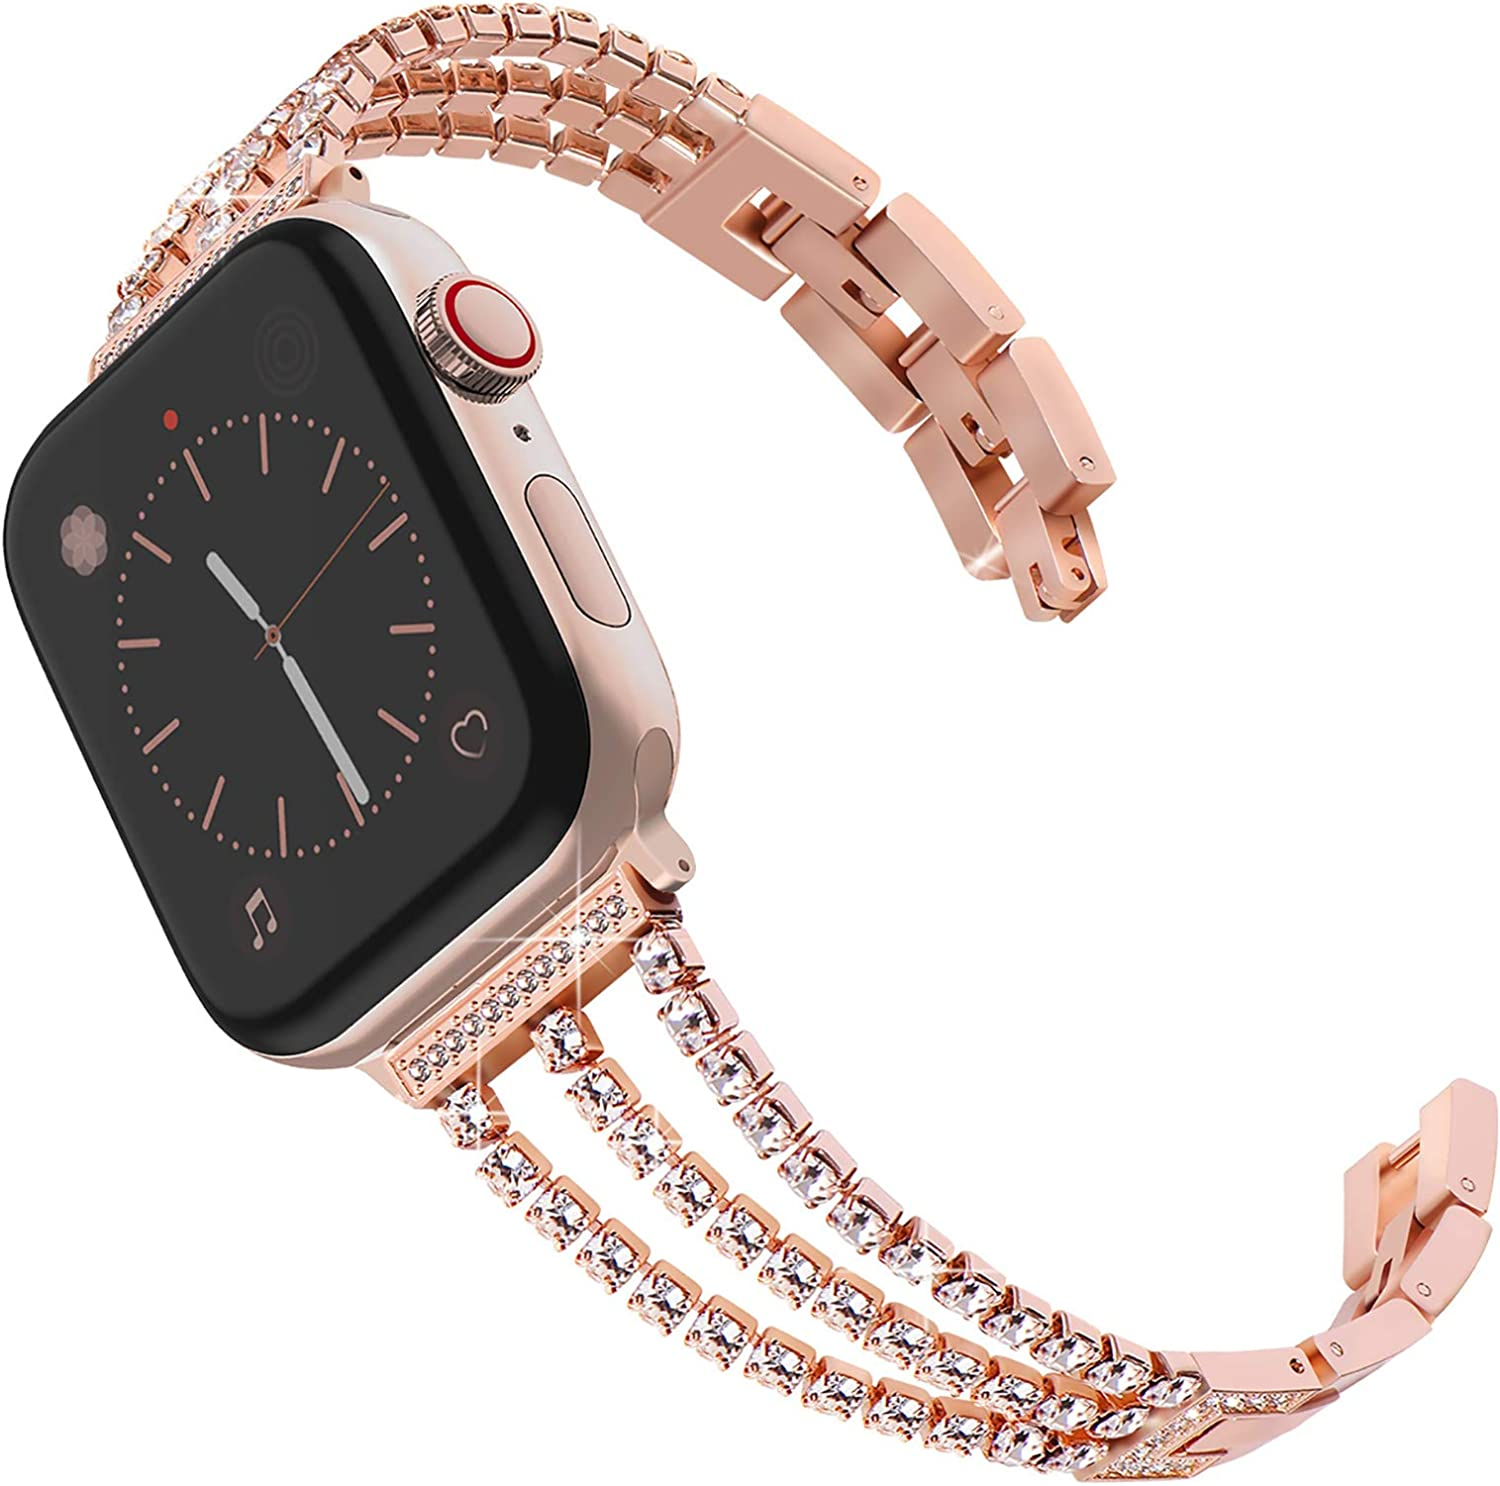 Surace Compatible with Apple Watch Bands 38mm Series 3 Women Bracelet Replacement for Apple Watch Bands Series 6 Series 5 Series 4 40mm Band Compatible with Apple Watch SE Band, Rose Gold